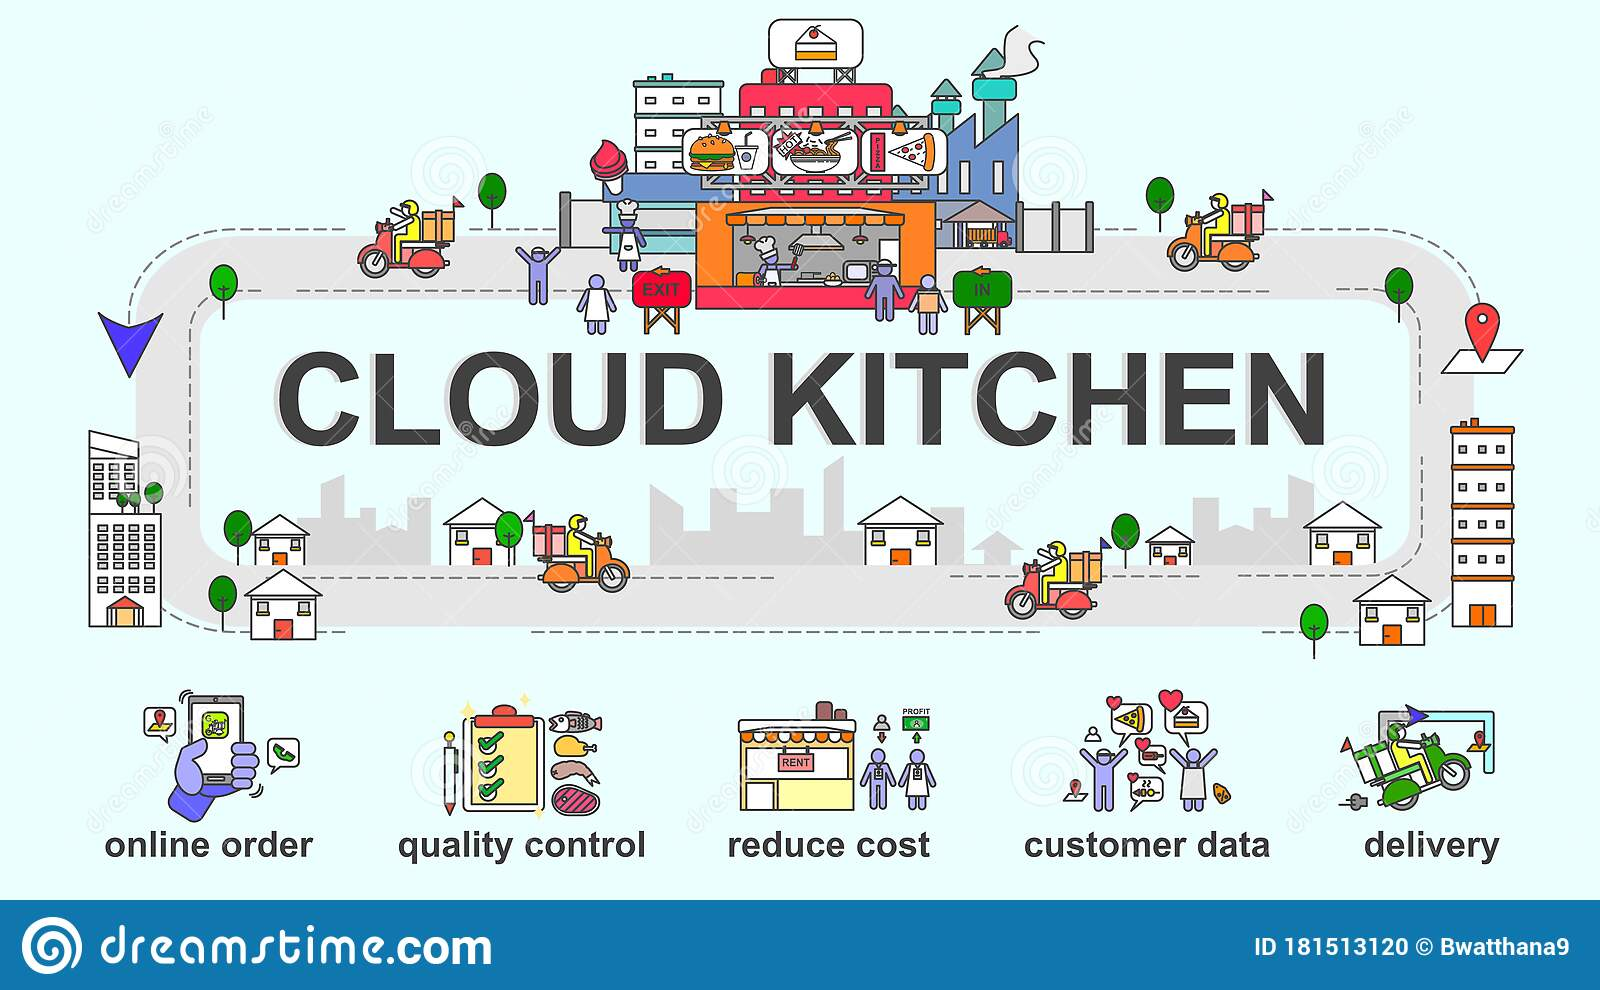 Download this vector banner of cloud kitchen vector illustration now. The Concept Flat Design Vector Of Cloud Kitchen With Minimal Icons Of Advantage Stock Vector Illustration Of Benefit Advantage 181513120